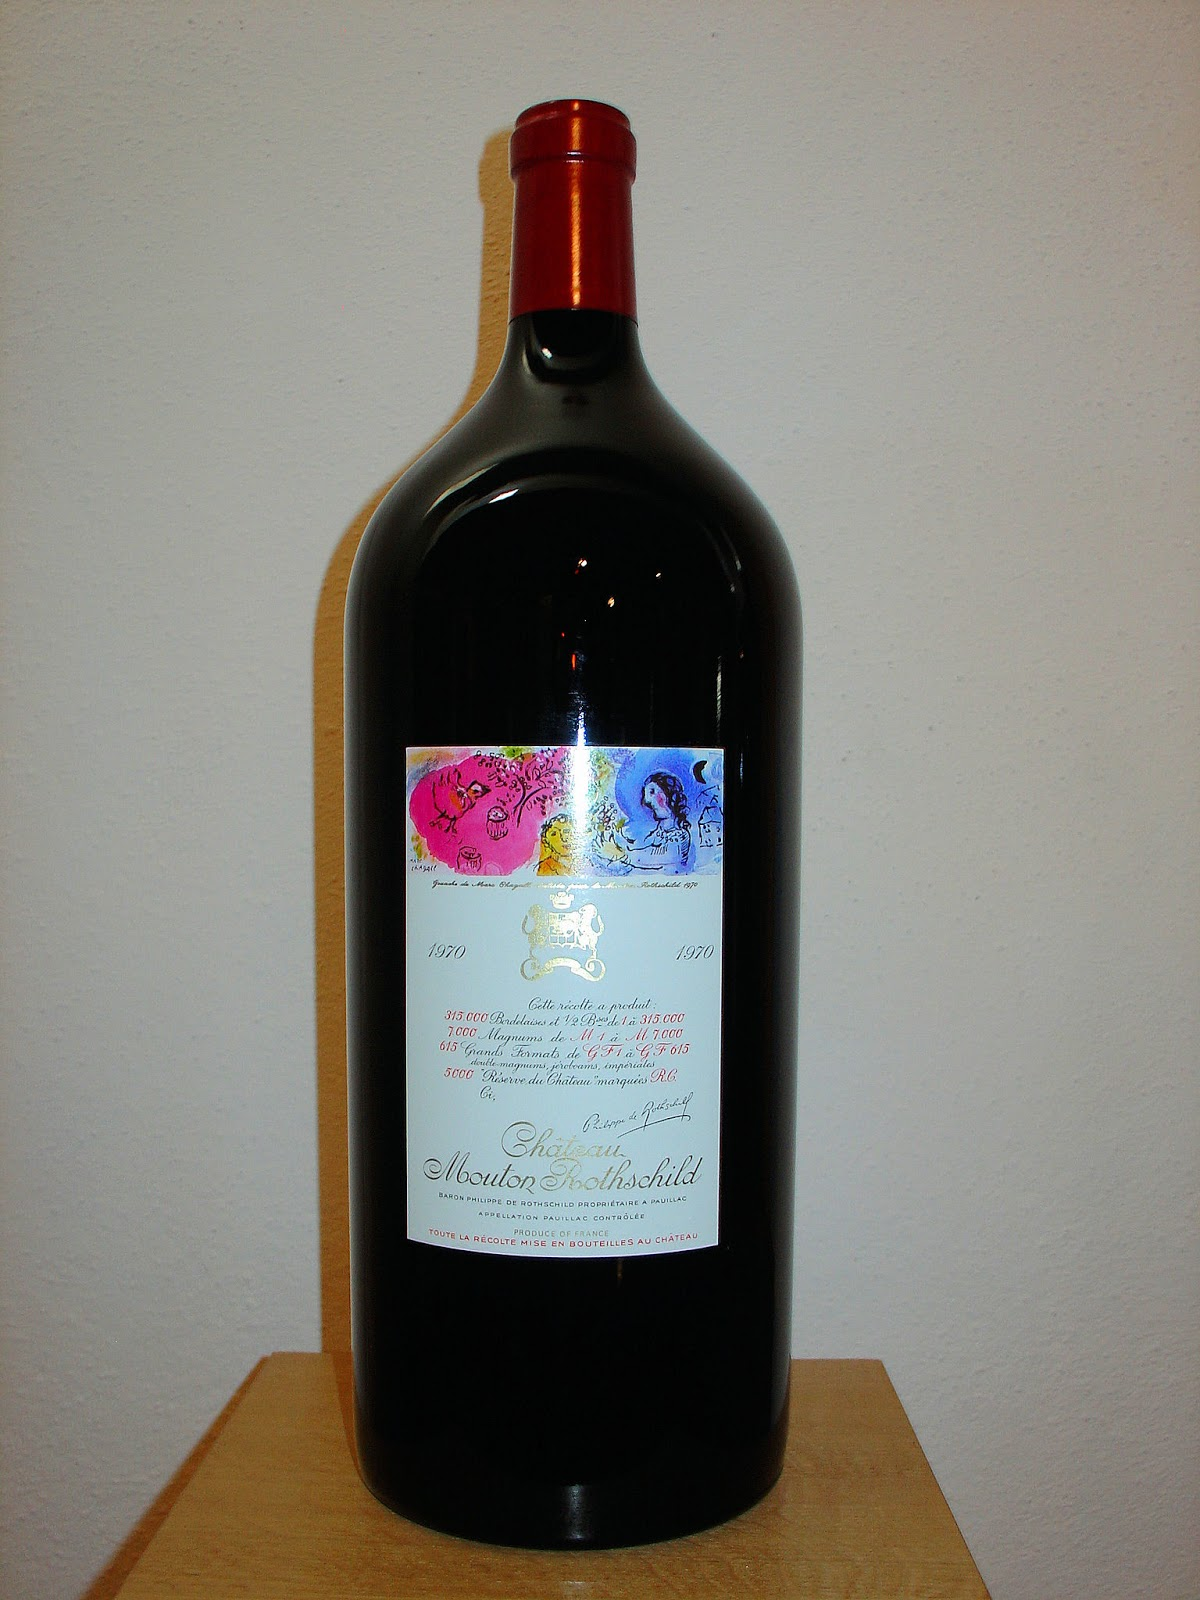 Chateau Mouton-Rothschild magnum from 1970. Original Chagall artwork decorates the label.